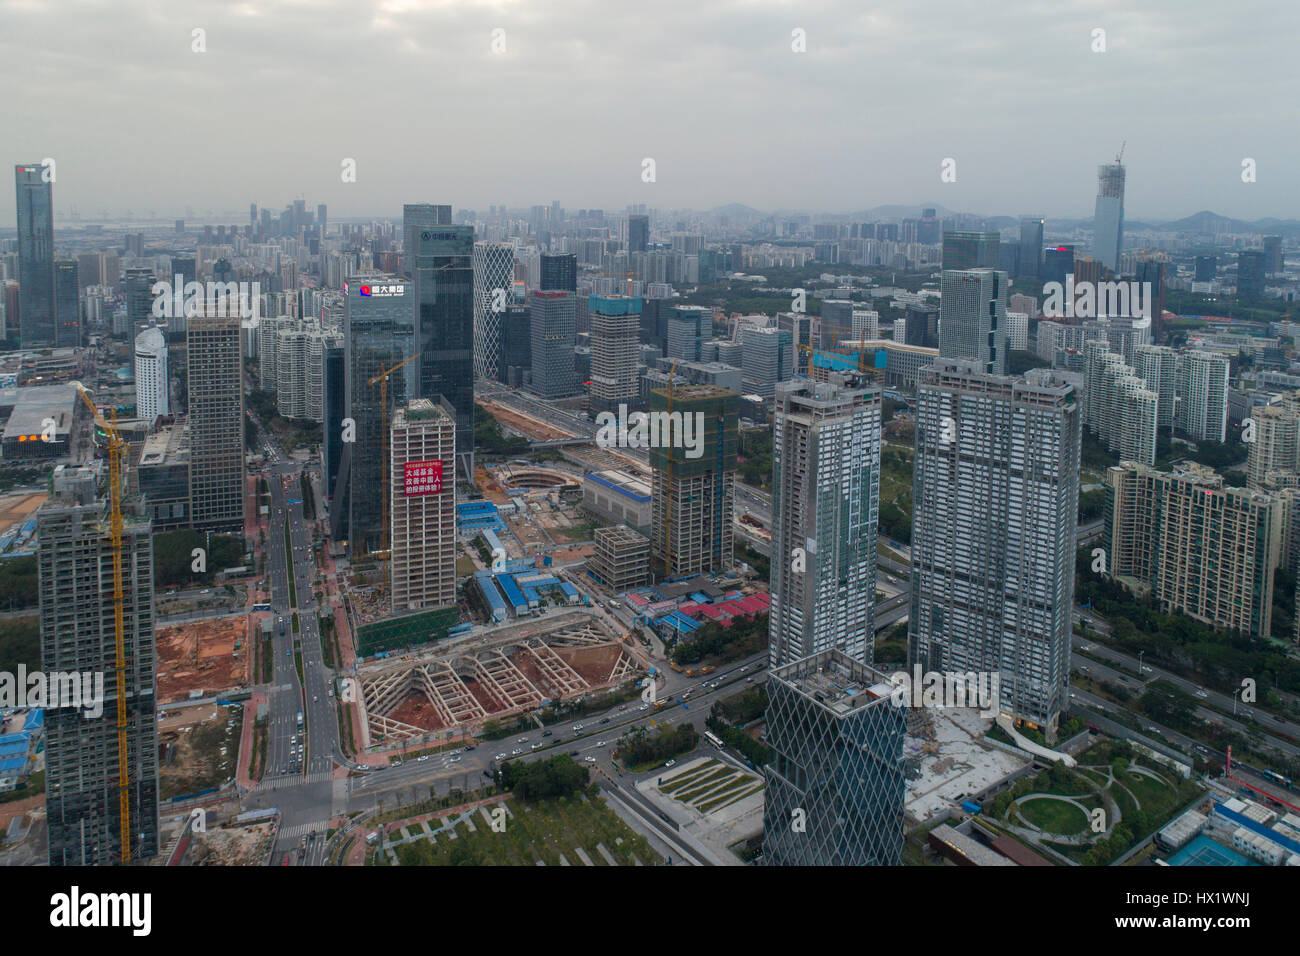 Aerial view looking out over Houhai and  the southern Nanshan district, an up and coming financial and tech area. - Stock Image